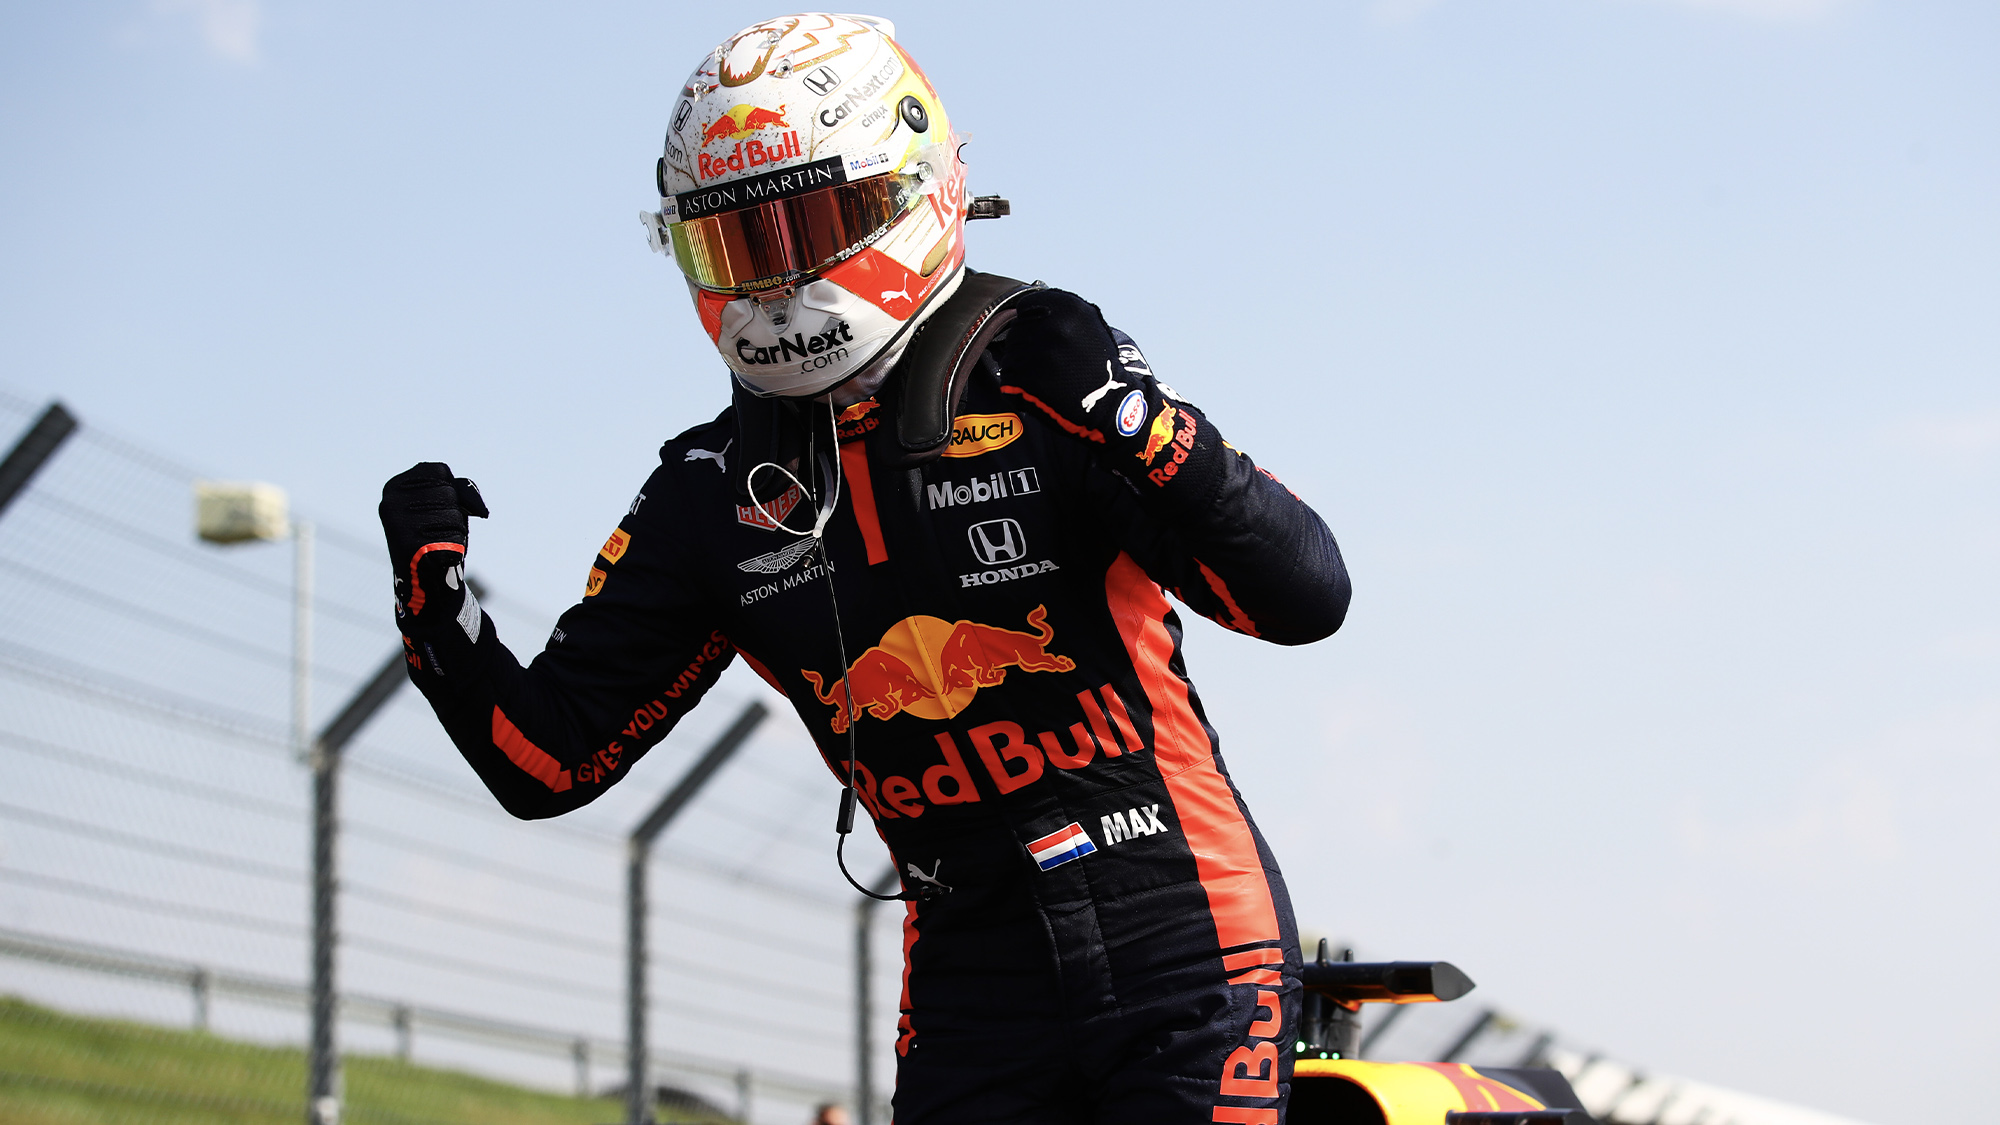 Max Verstappen celebrates after winning the 2020 f1 70th Anniversary Grand Prix for Red Bull at Silverstone